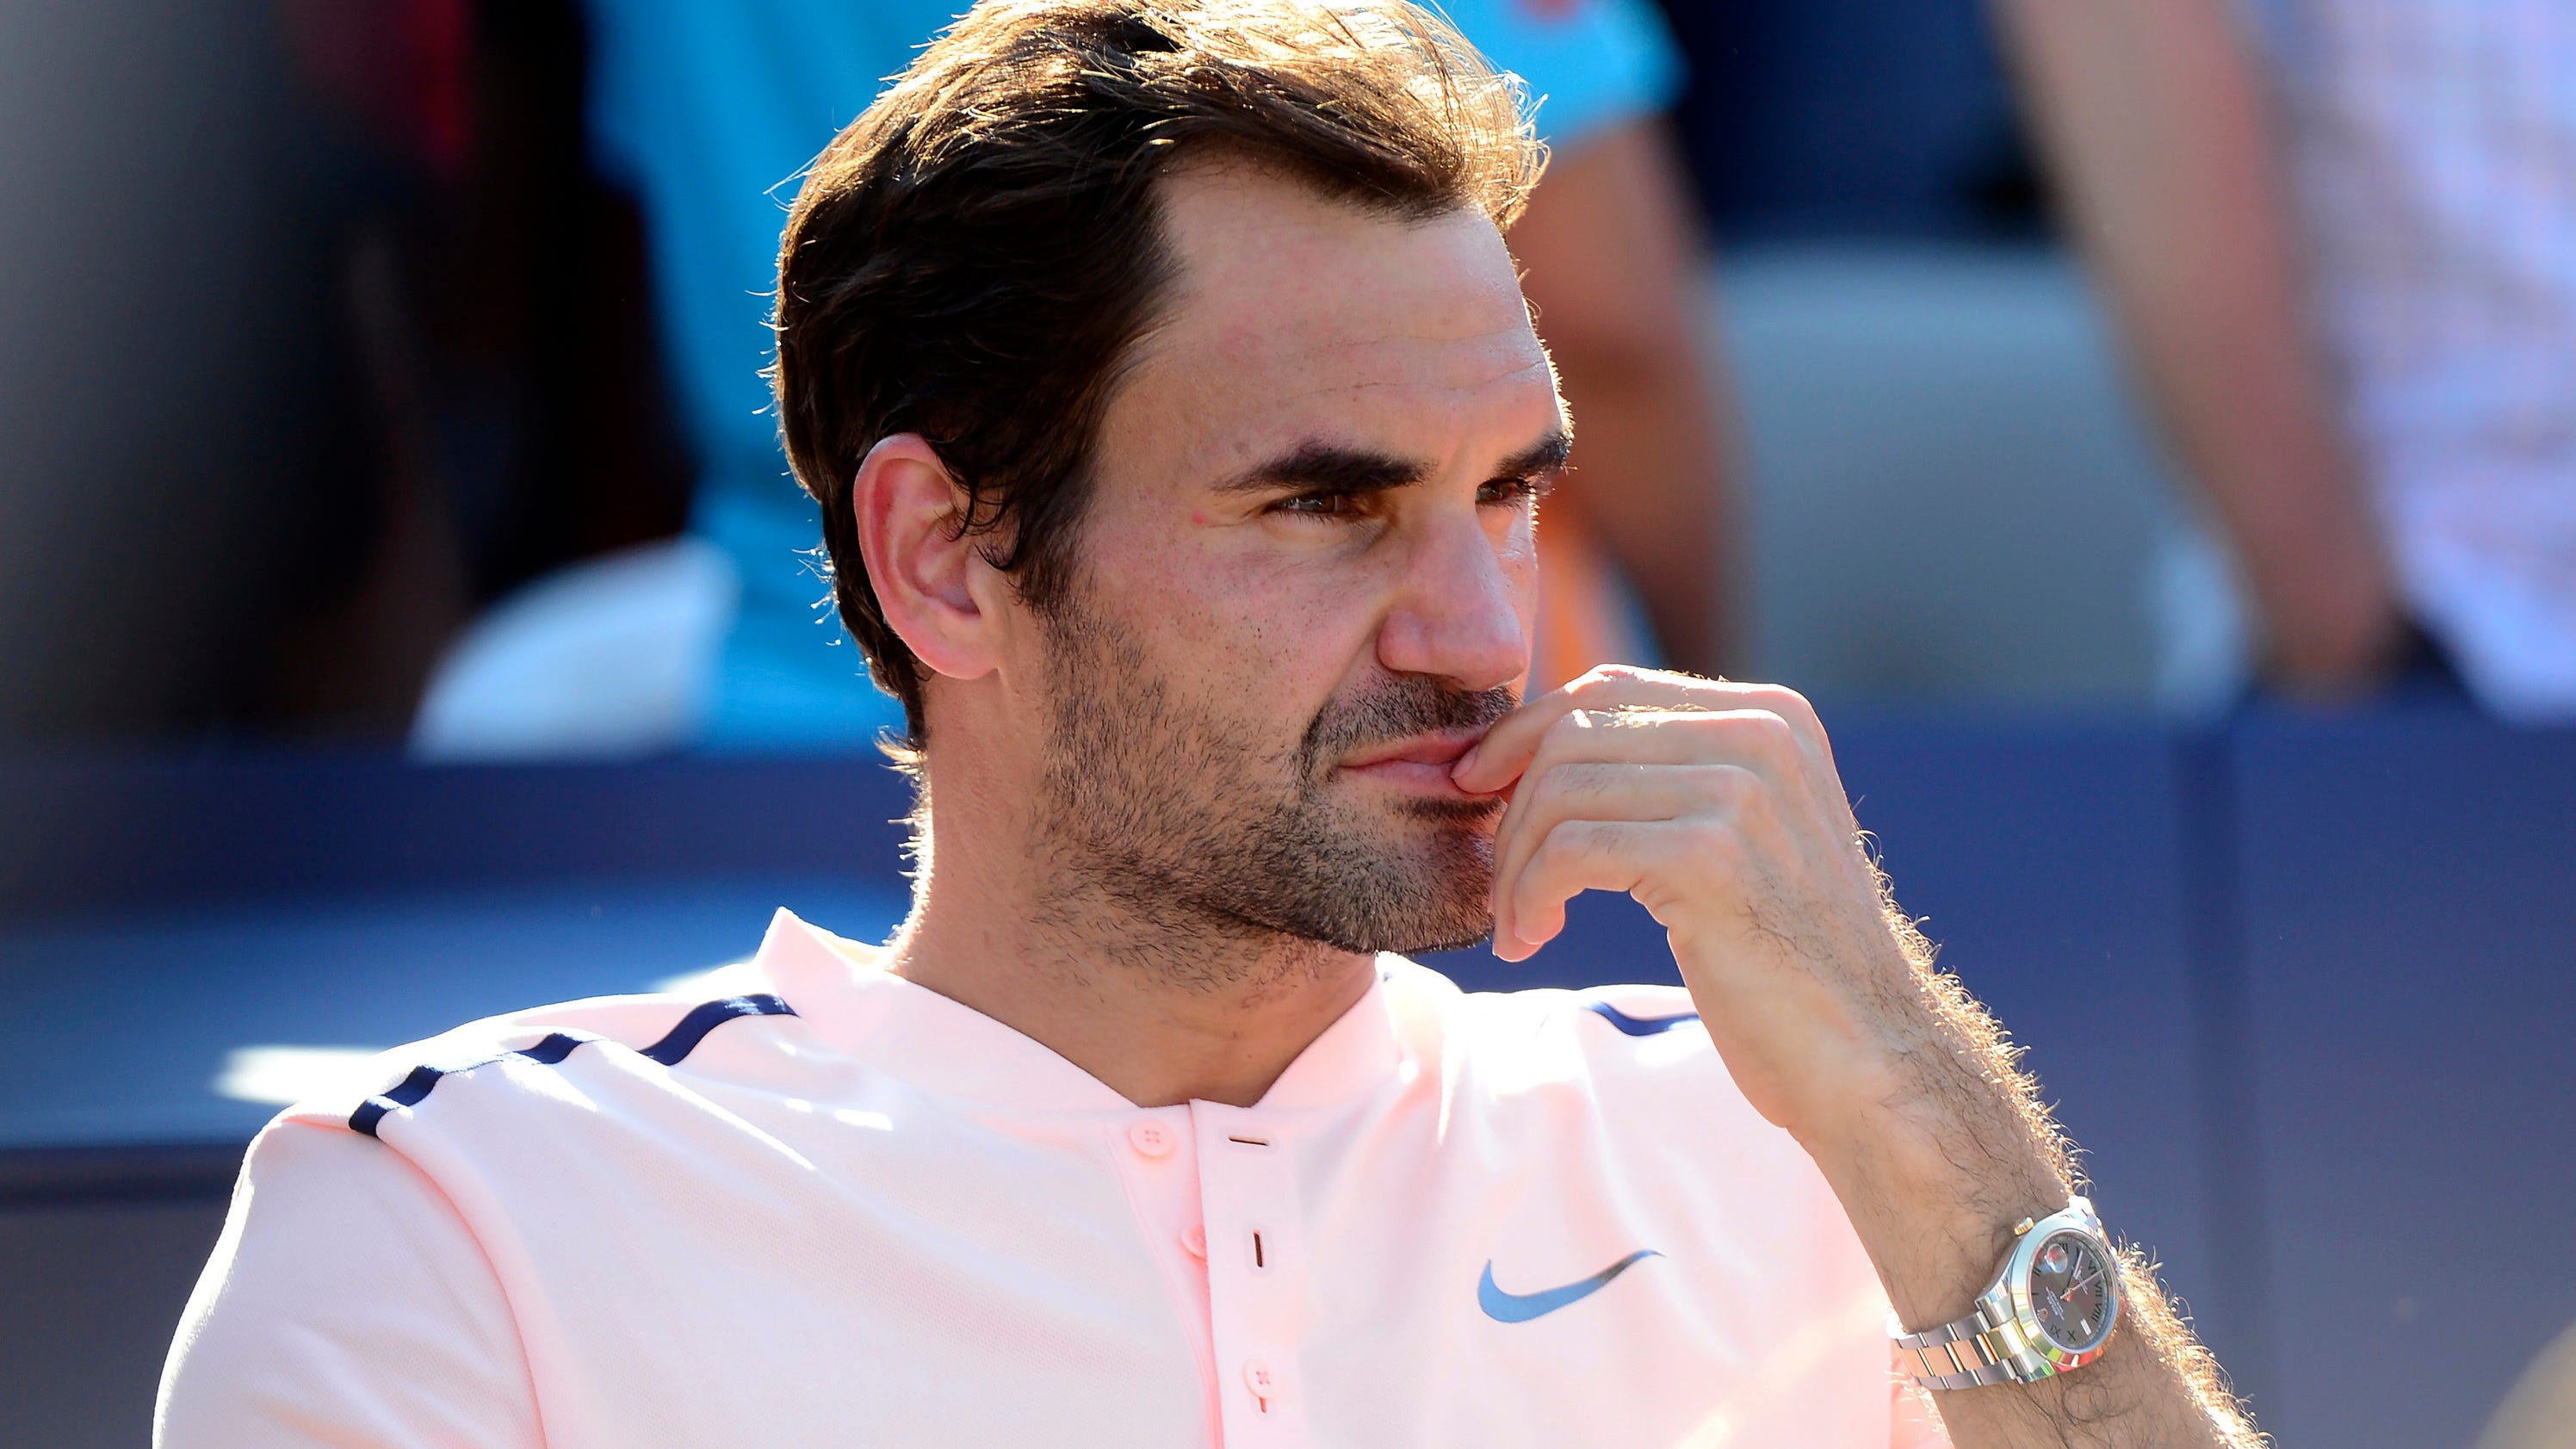 Roger Federer withdraws from Cincinnati's Western and Southern Open